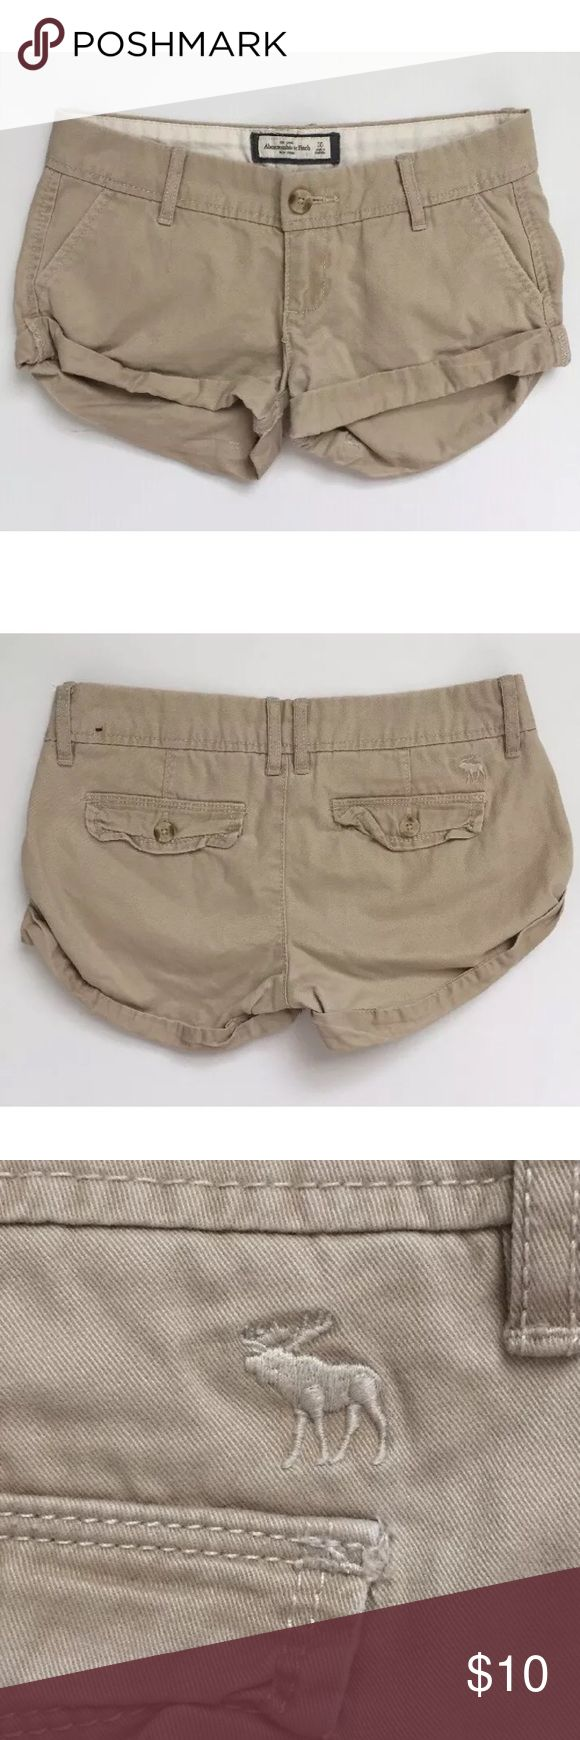 Abercrombie & Fitch Women's Khaki Shorts Size 00 These shorts are pre-owned but are in good condition with lots of life left in them!  If you have any questions please feel free to ask and be sure to check out my other A&F listings! Abercrombie & Fitch Shorts